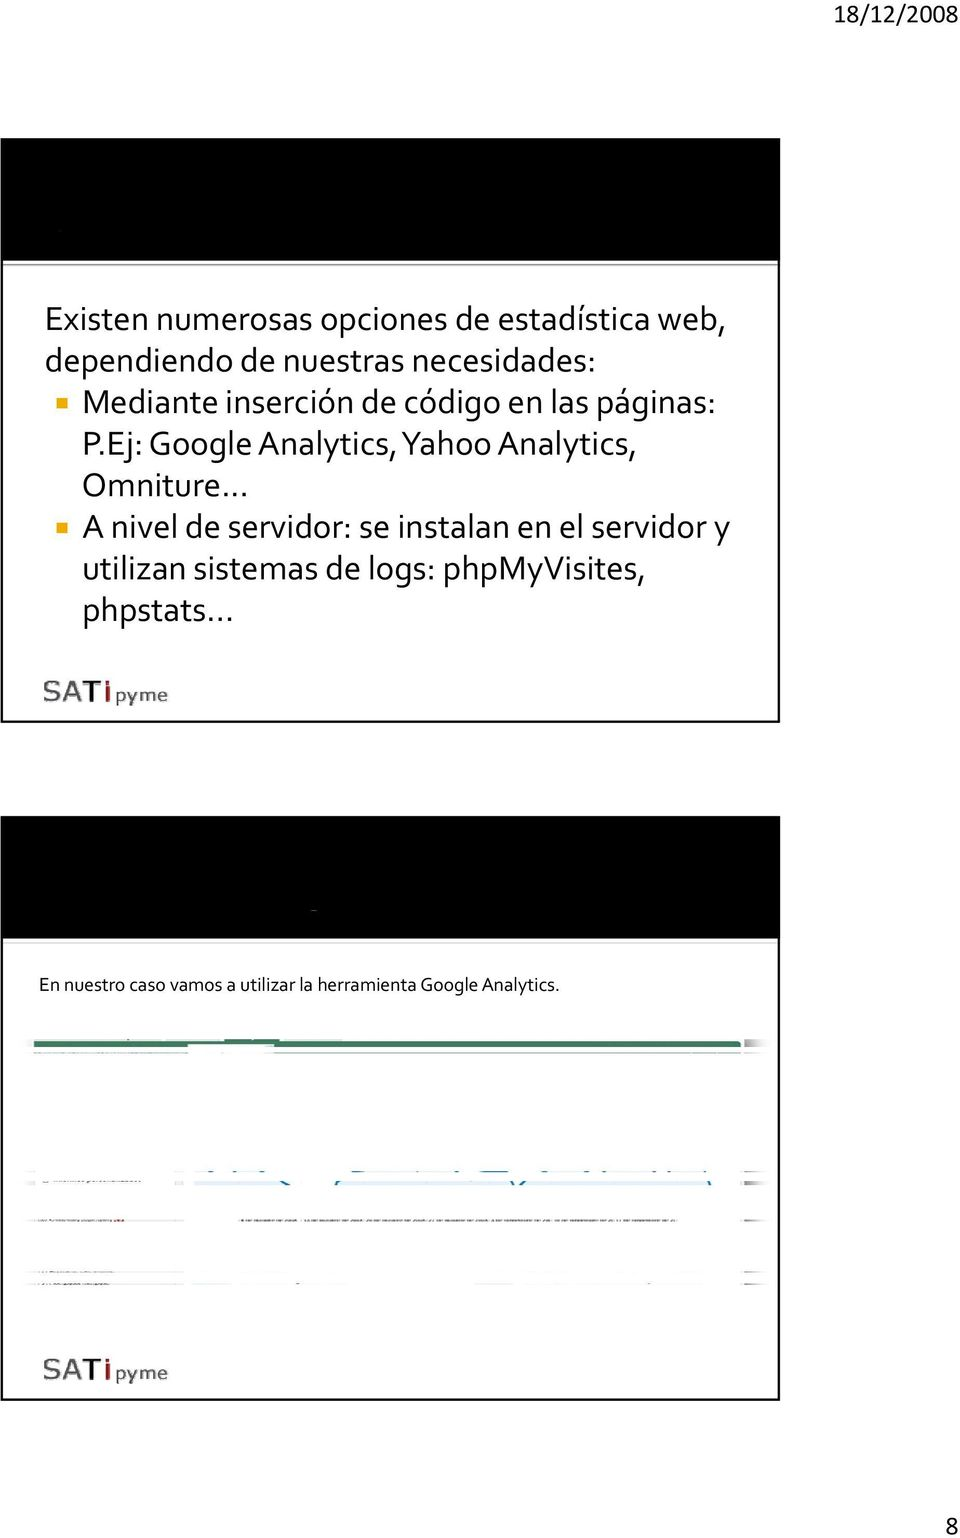 Ej: Google Analytics, Yahoo Analytics, Omniture.